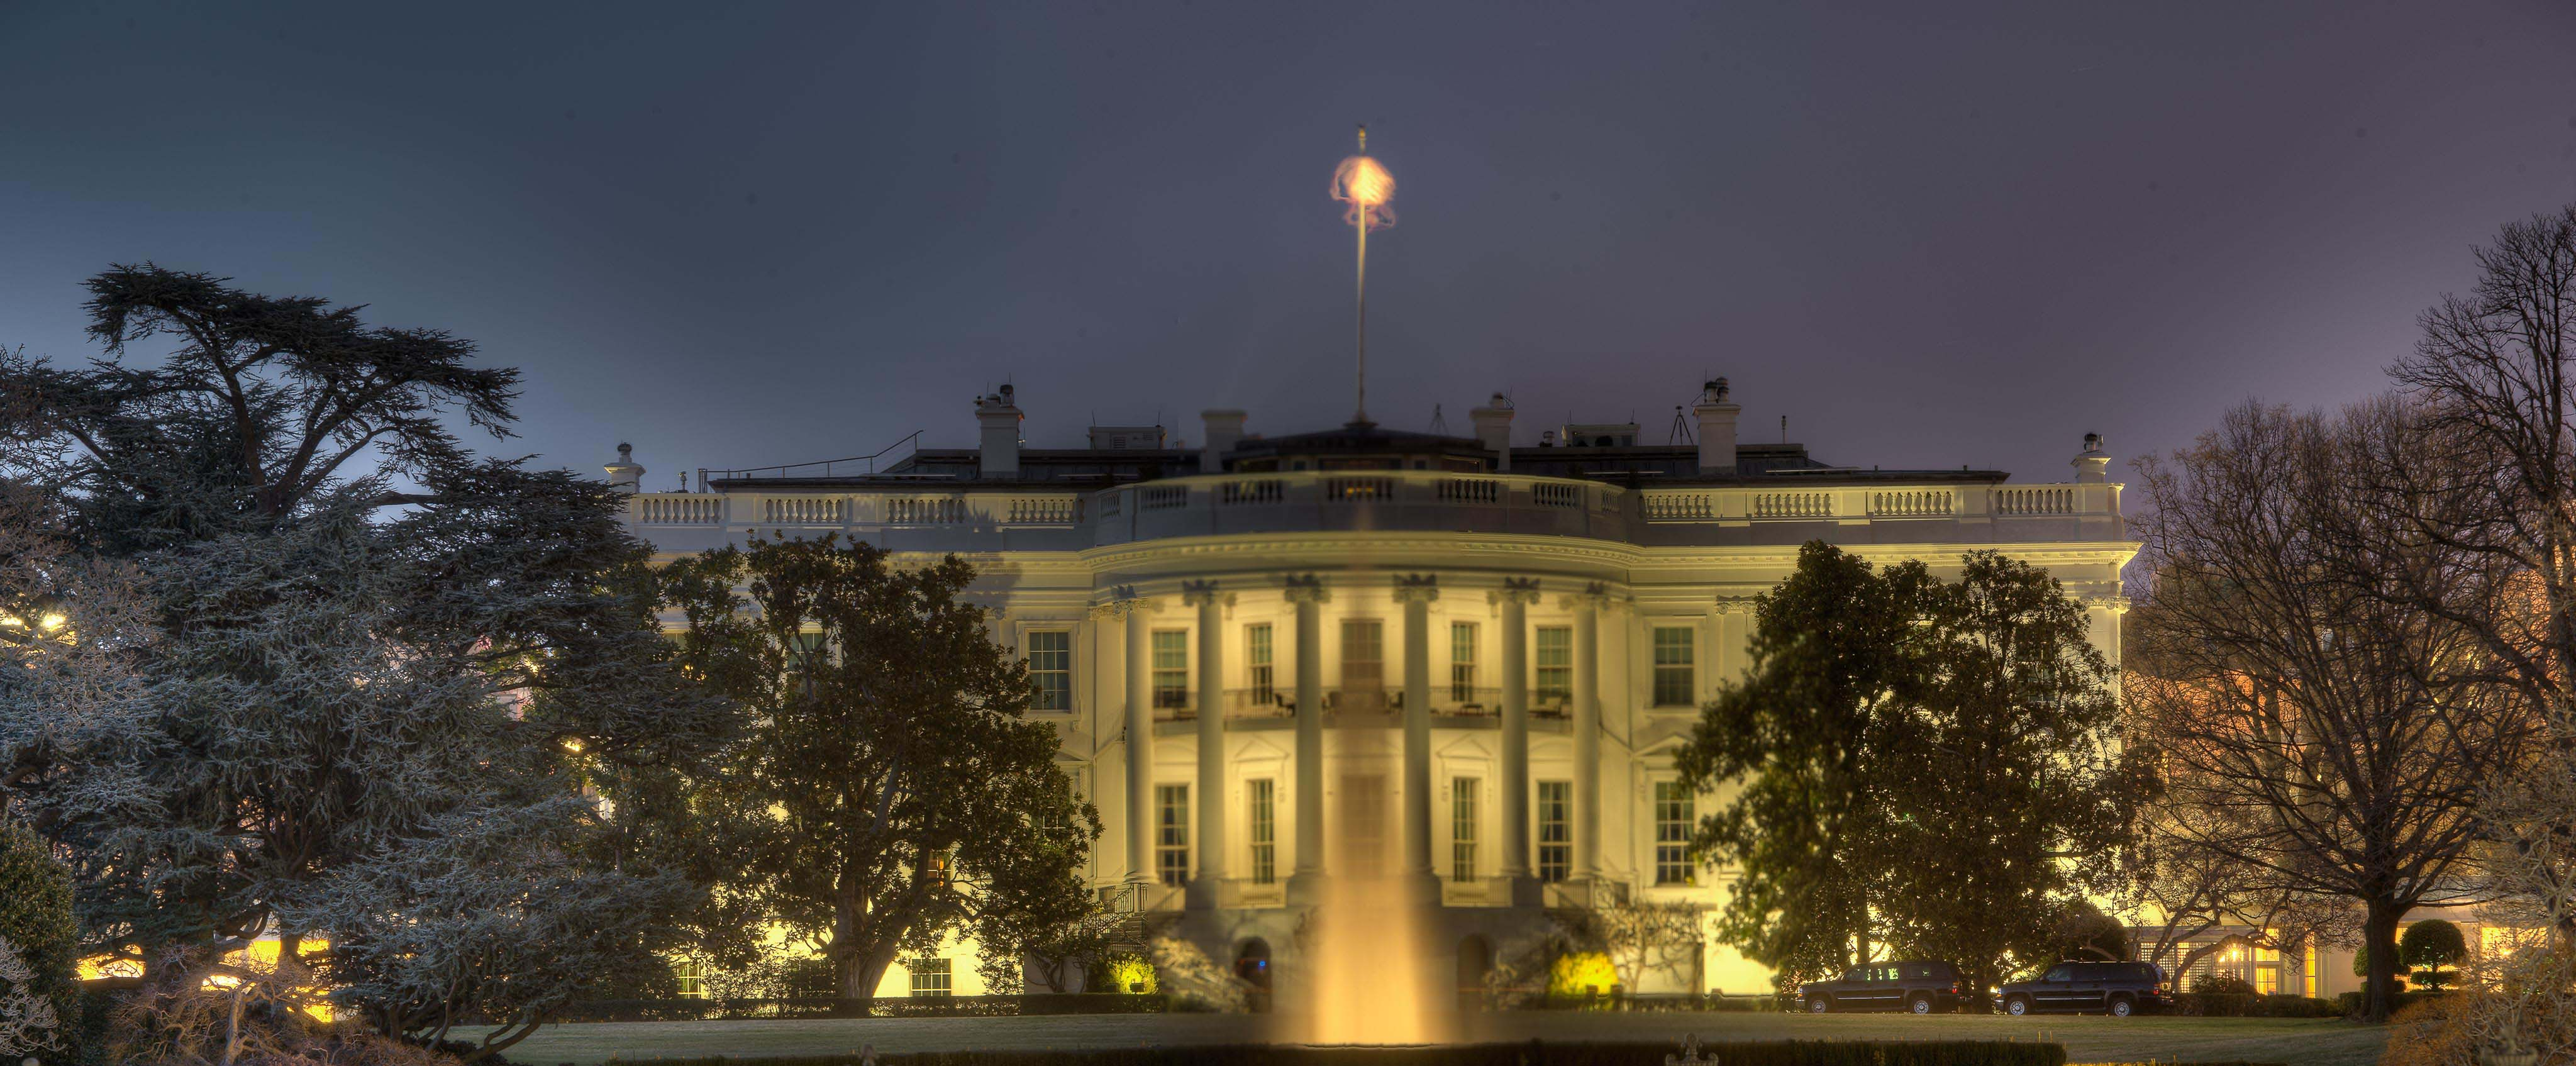 The Whitehouse at Night (HDR) - Copyright, 2014, Gerard McIntyre.  All rights reserved.